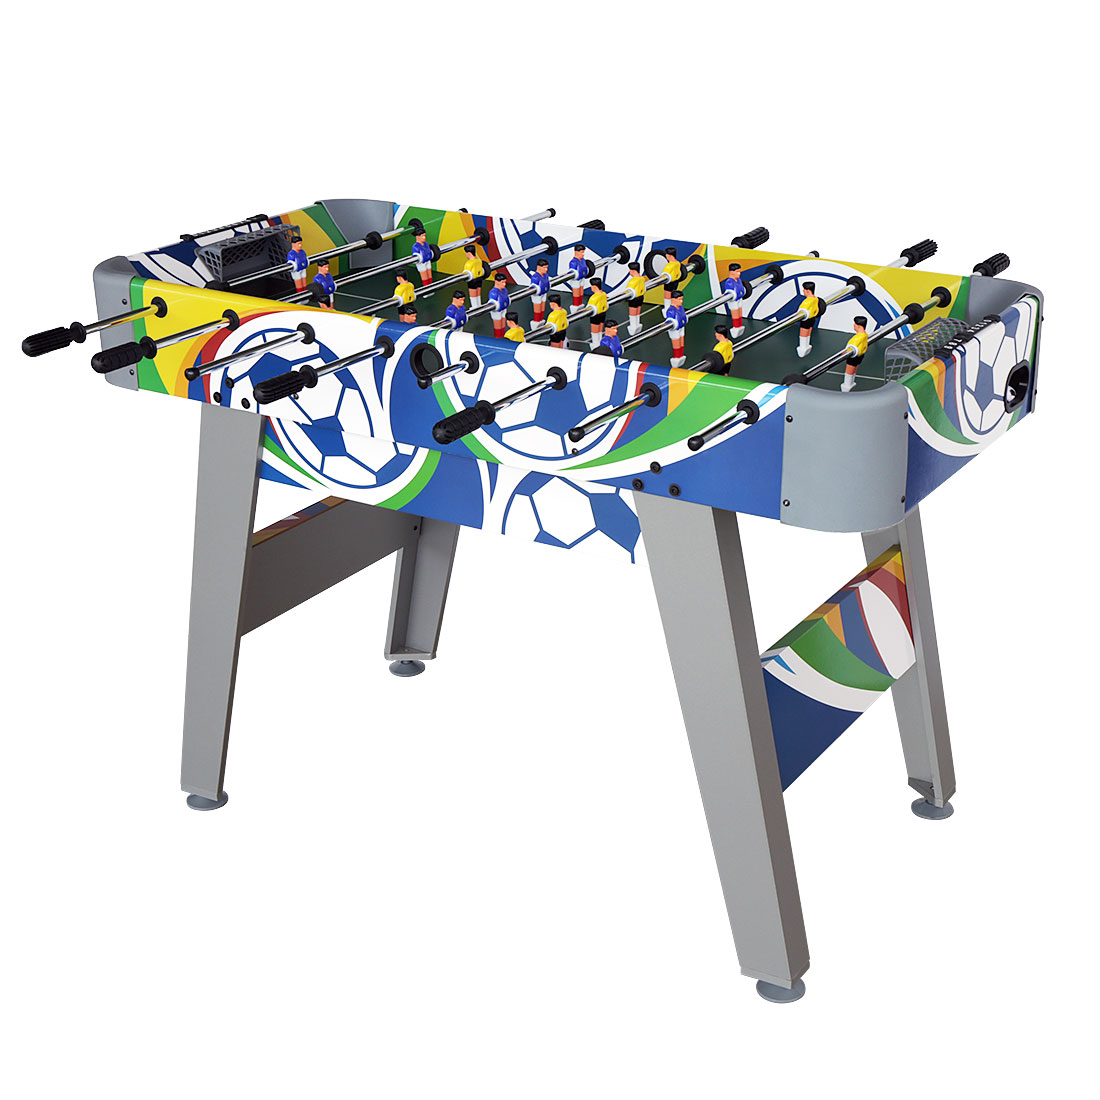 4 Ft Soccer Foosball Table by HLC